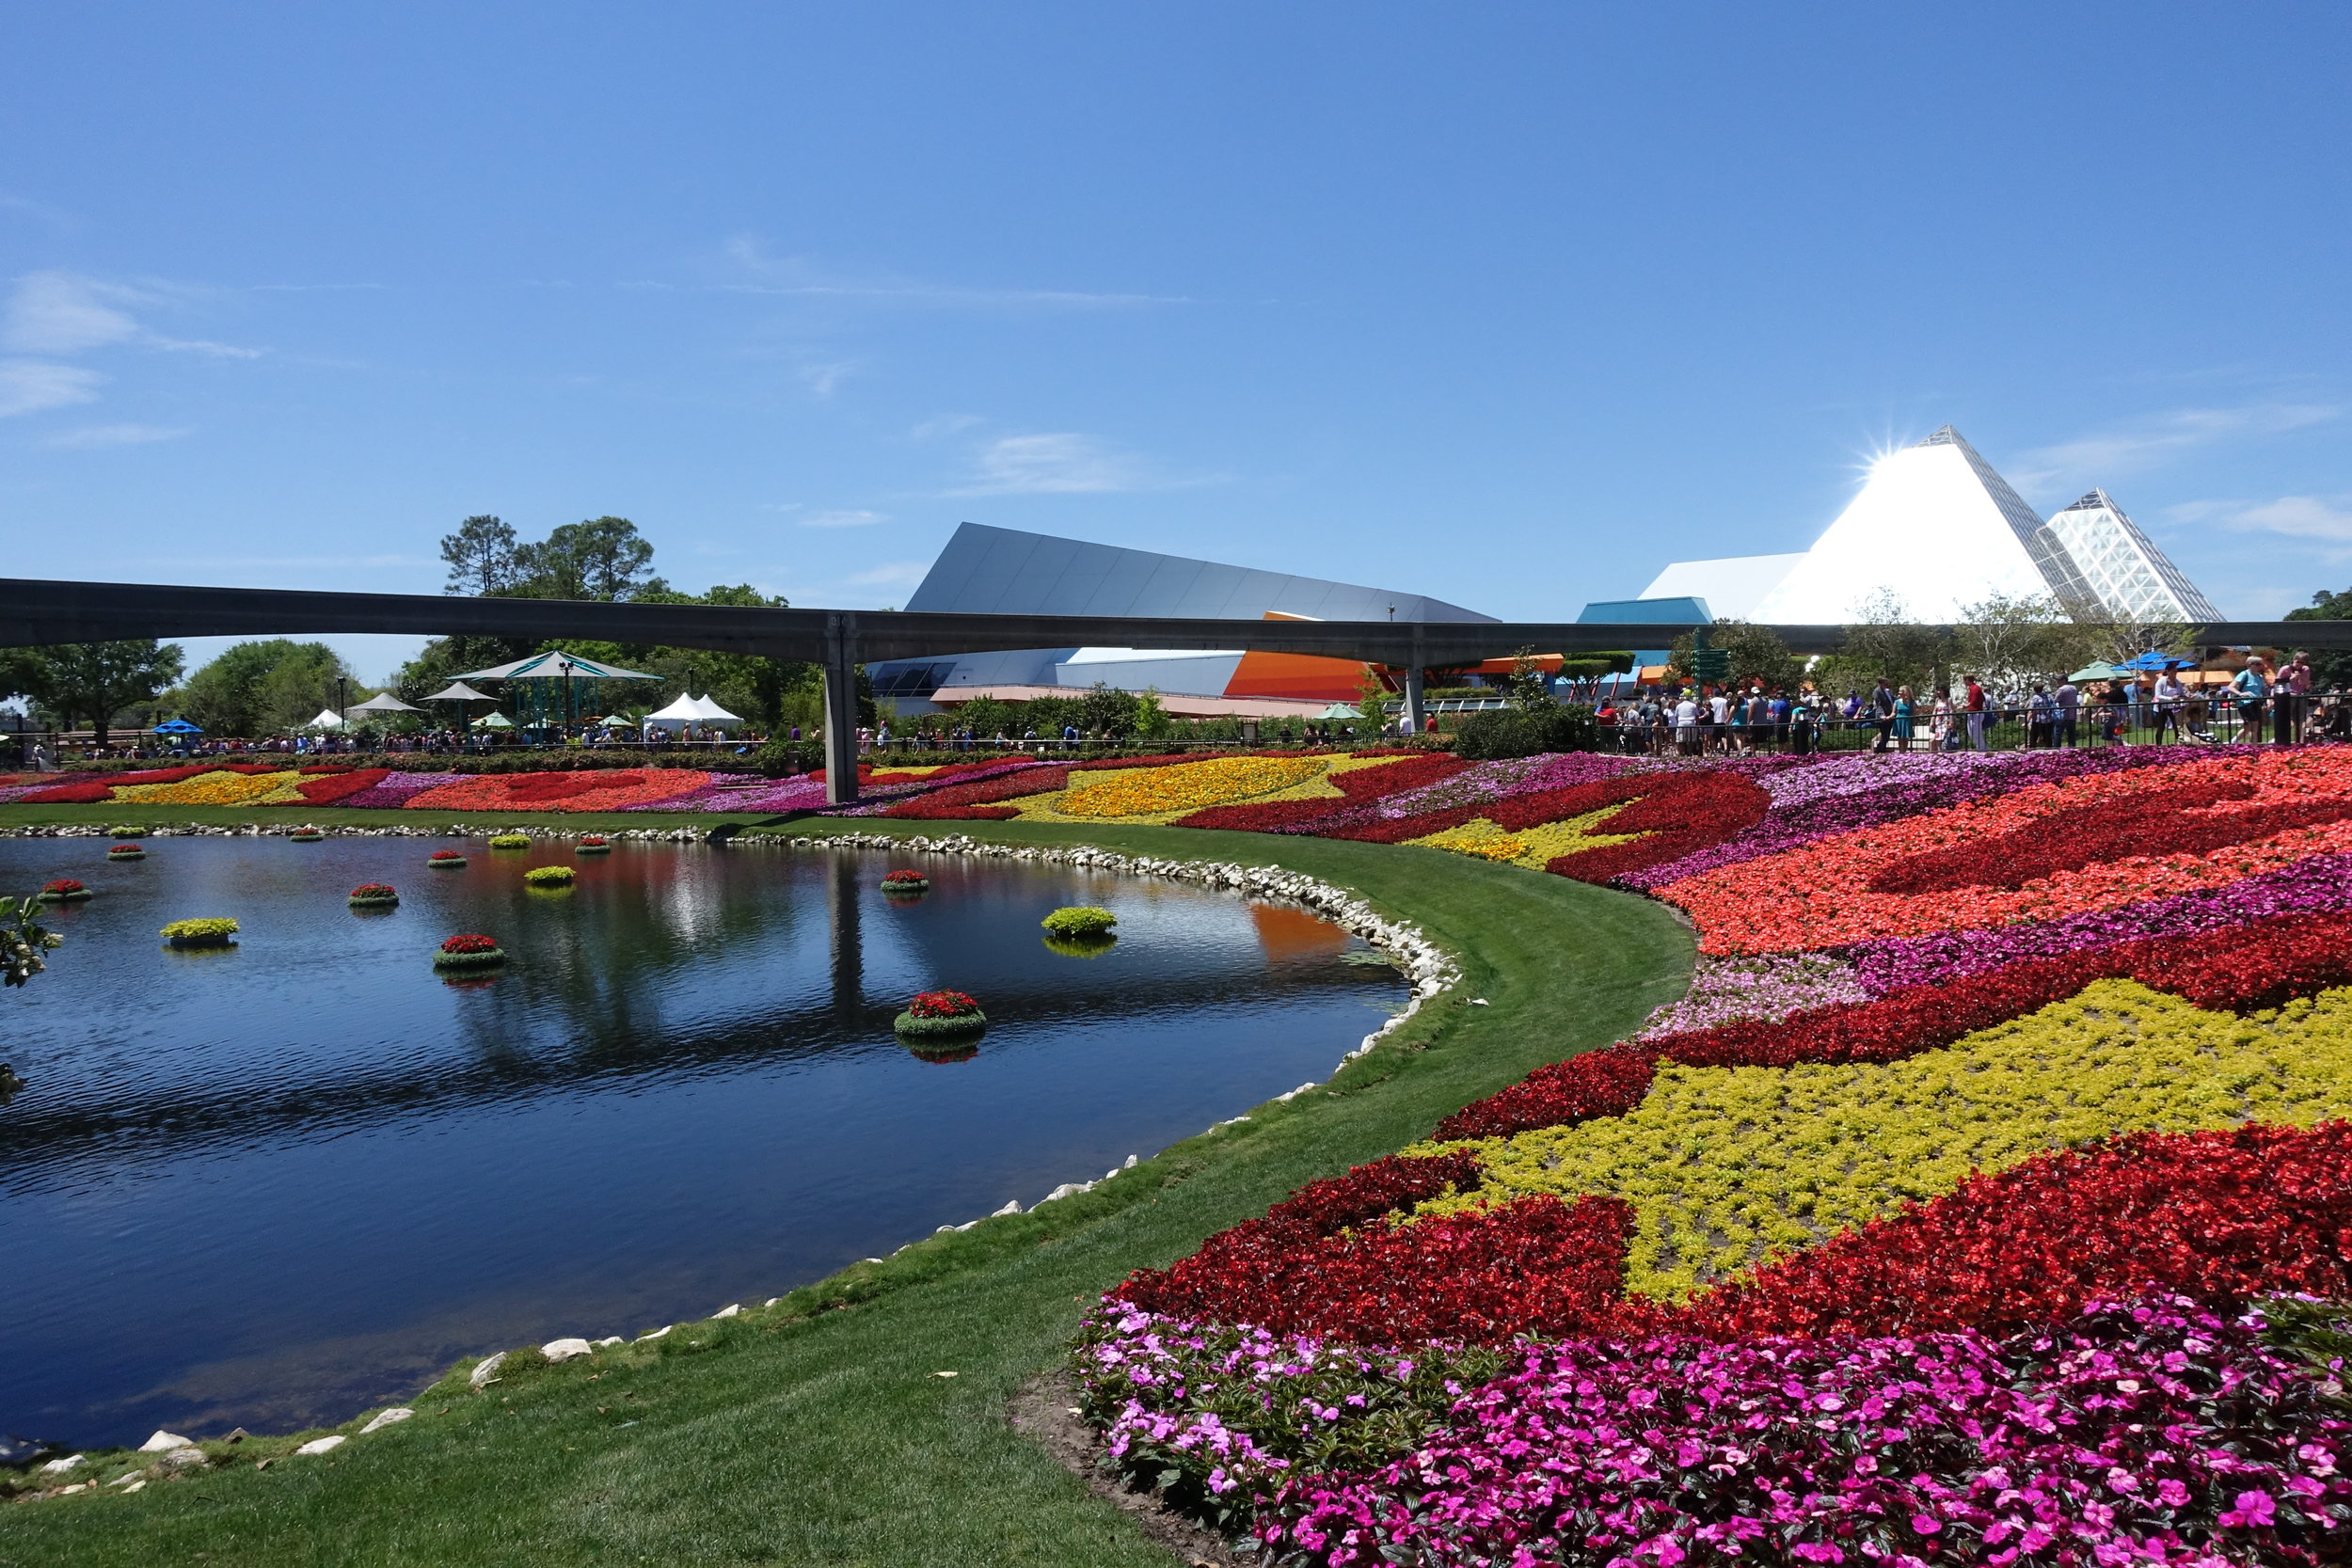 A breathtaking view in Epcot.